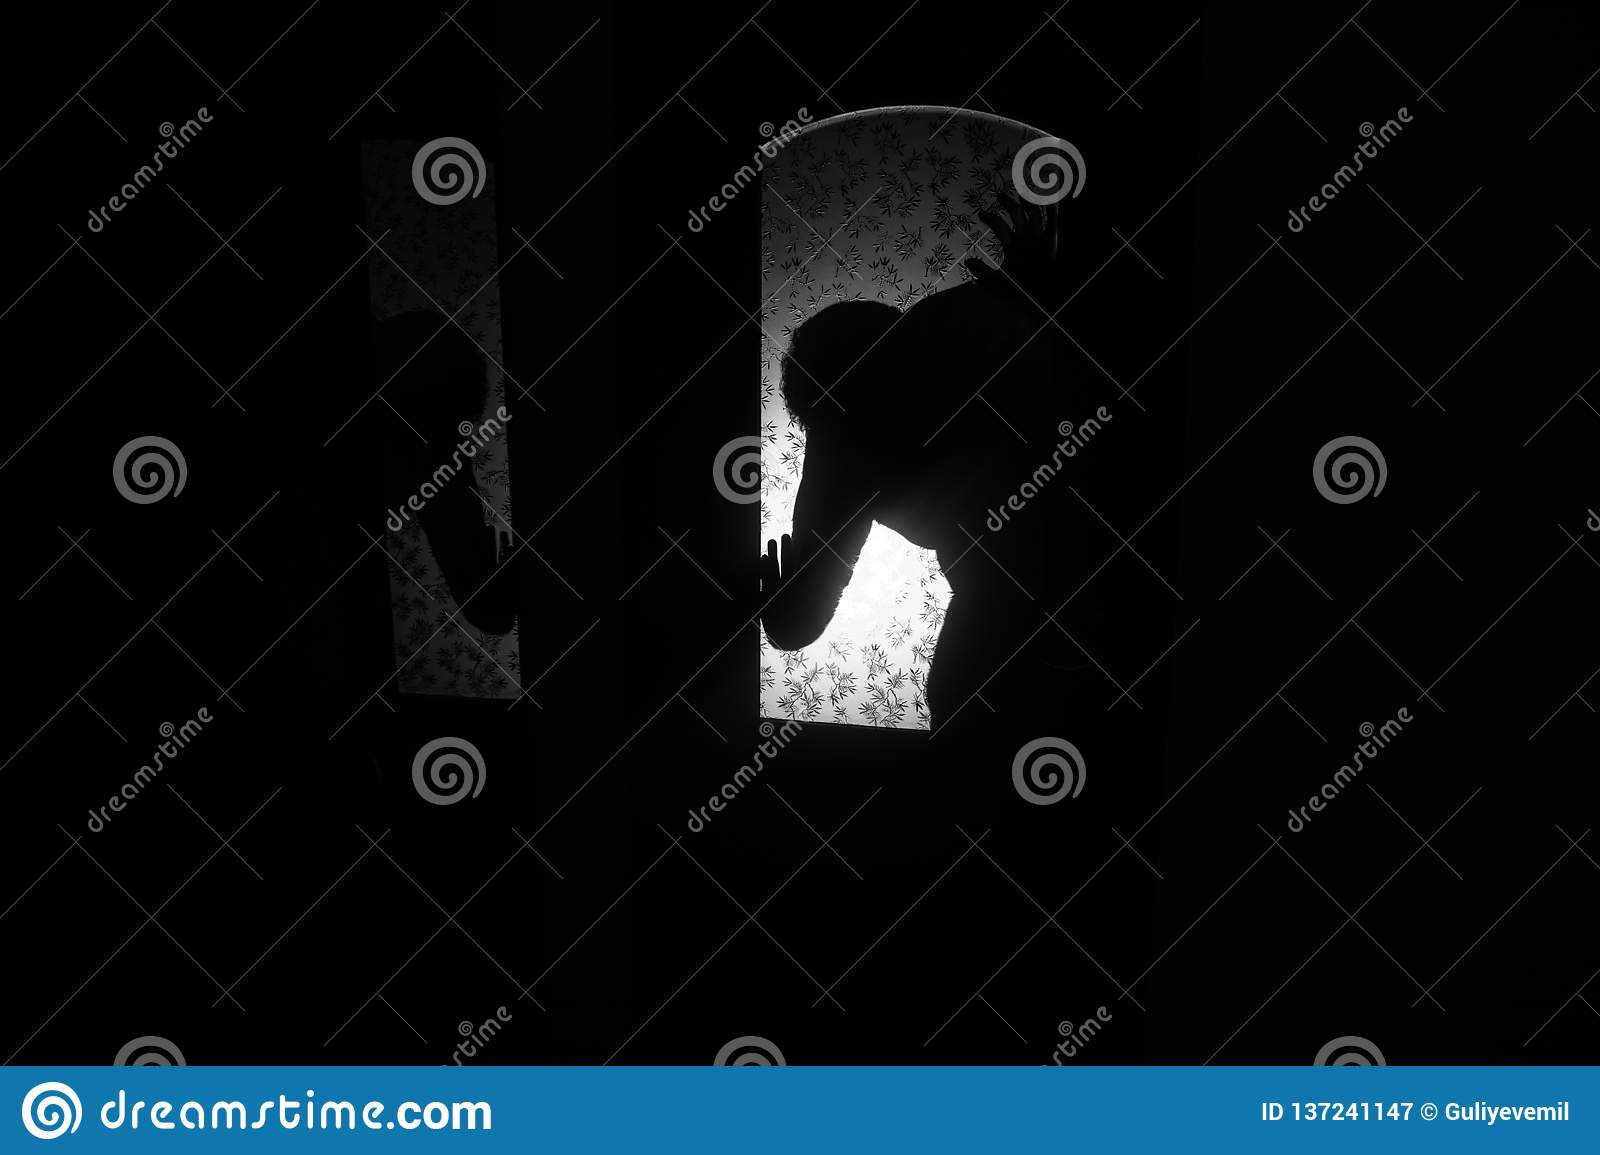 Silhouette of an unknown shadow figure on a door through a closed glass door. The silhouette of a human in front of a window at